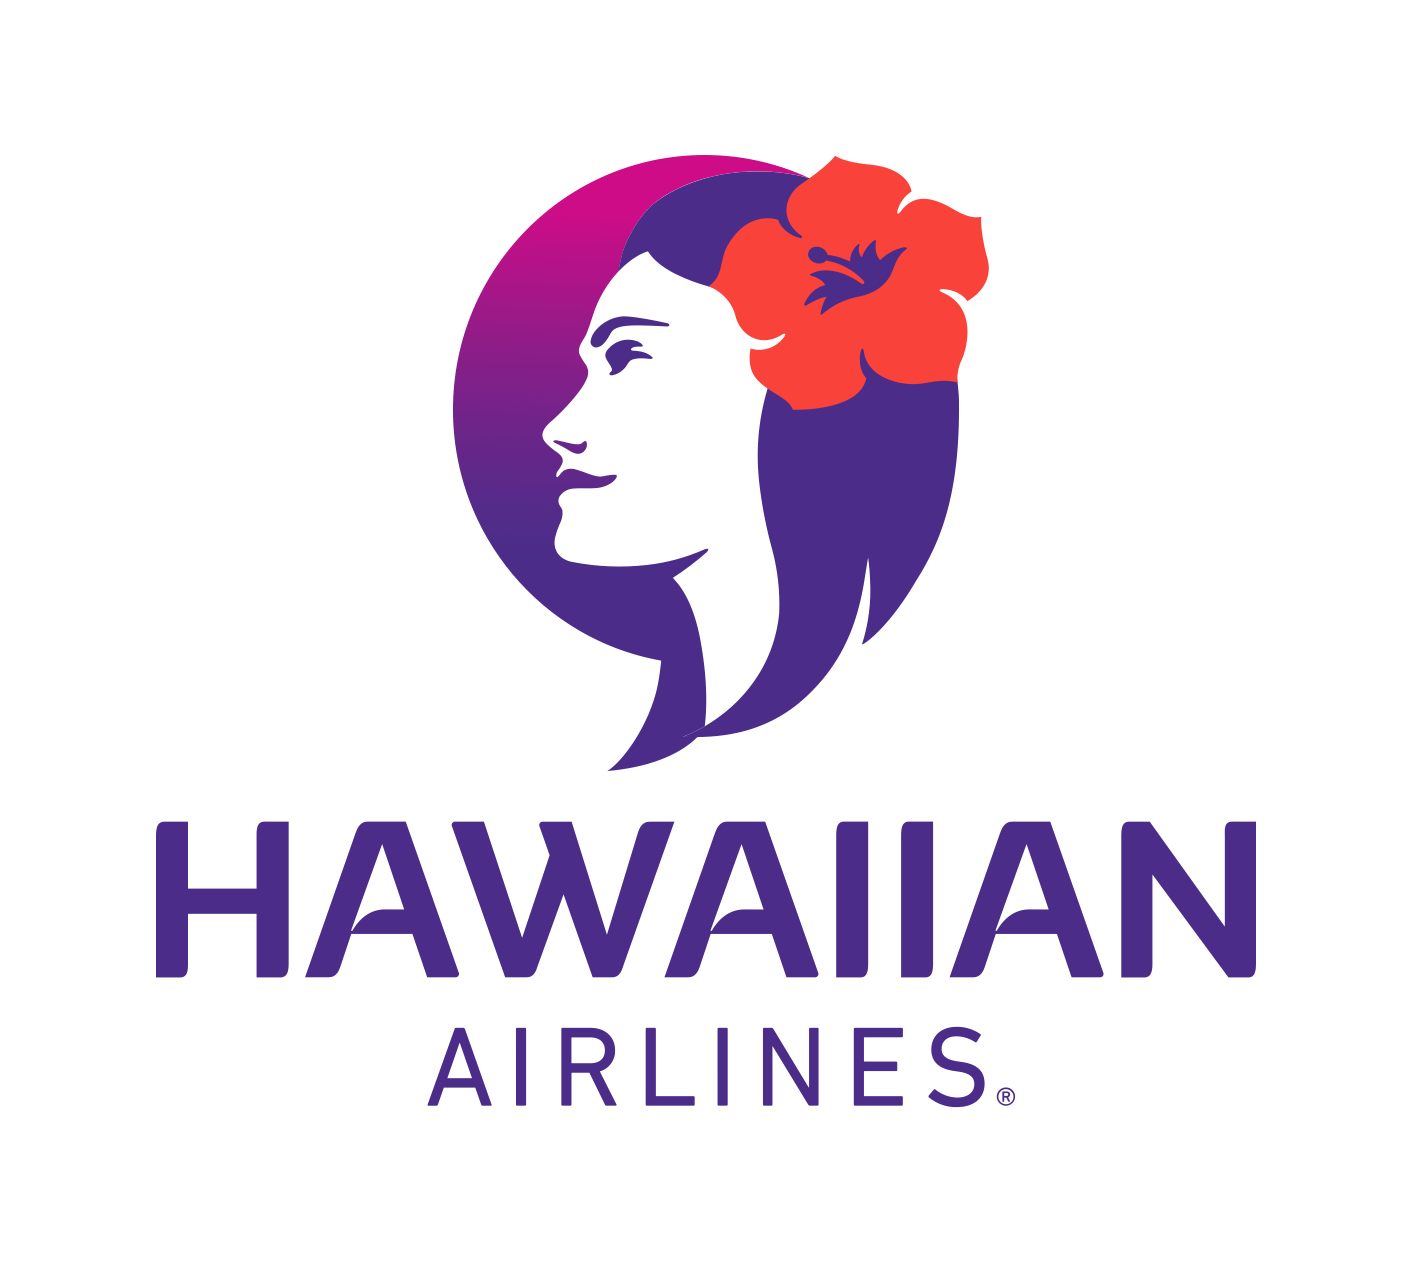 A new look unveiled hawaiian airlines a new look for pualani buycottarizona Gallery